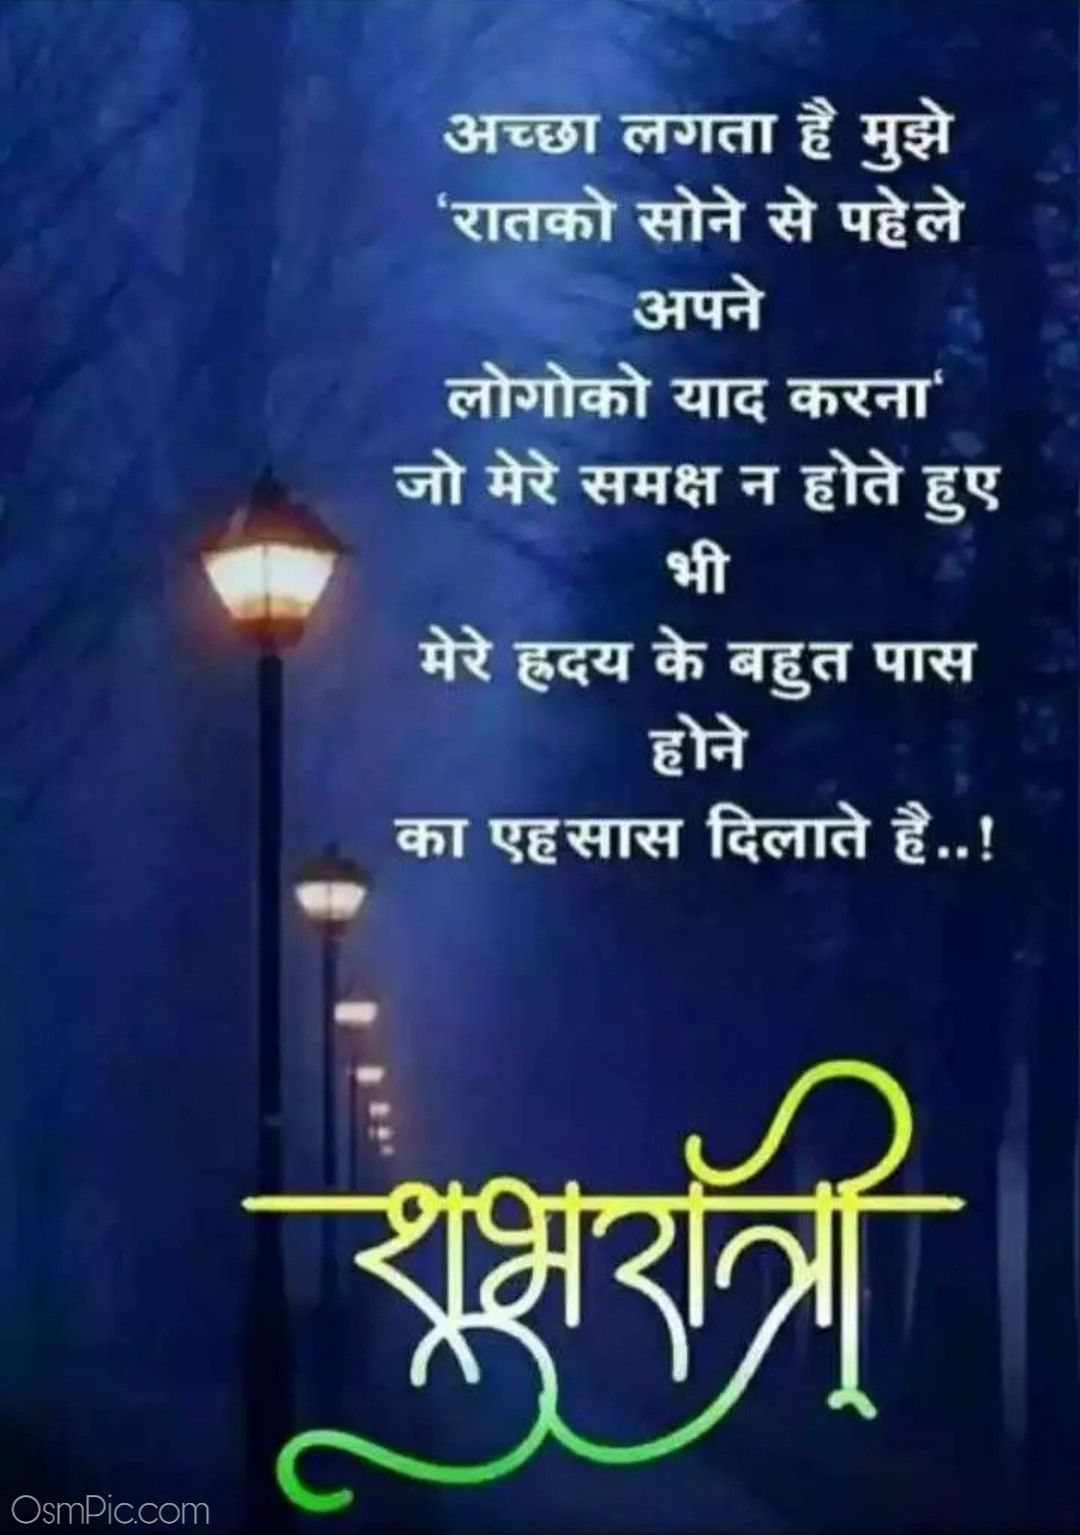 Good Night Images With Quotes In Hindi For Whatsapp Good Night Hindi Good Night Hindi Quotes Good Night Quotes